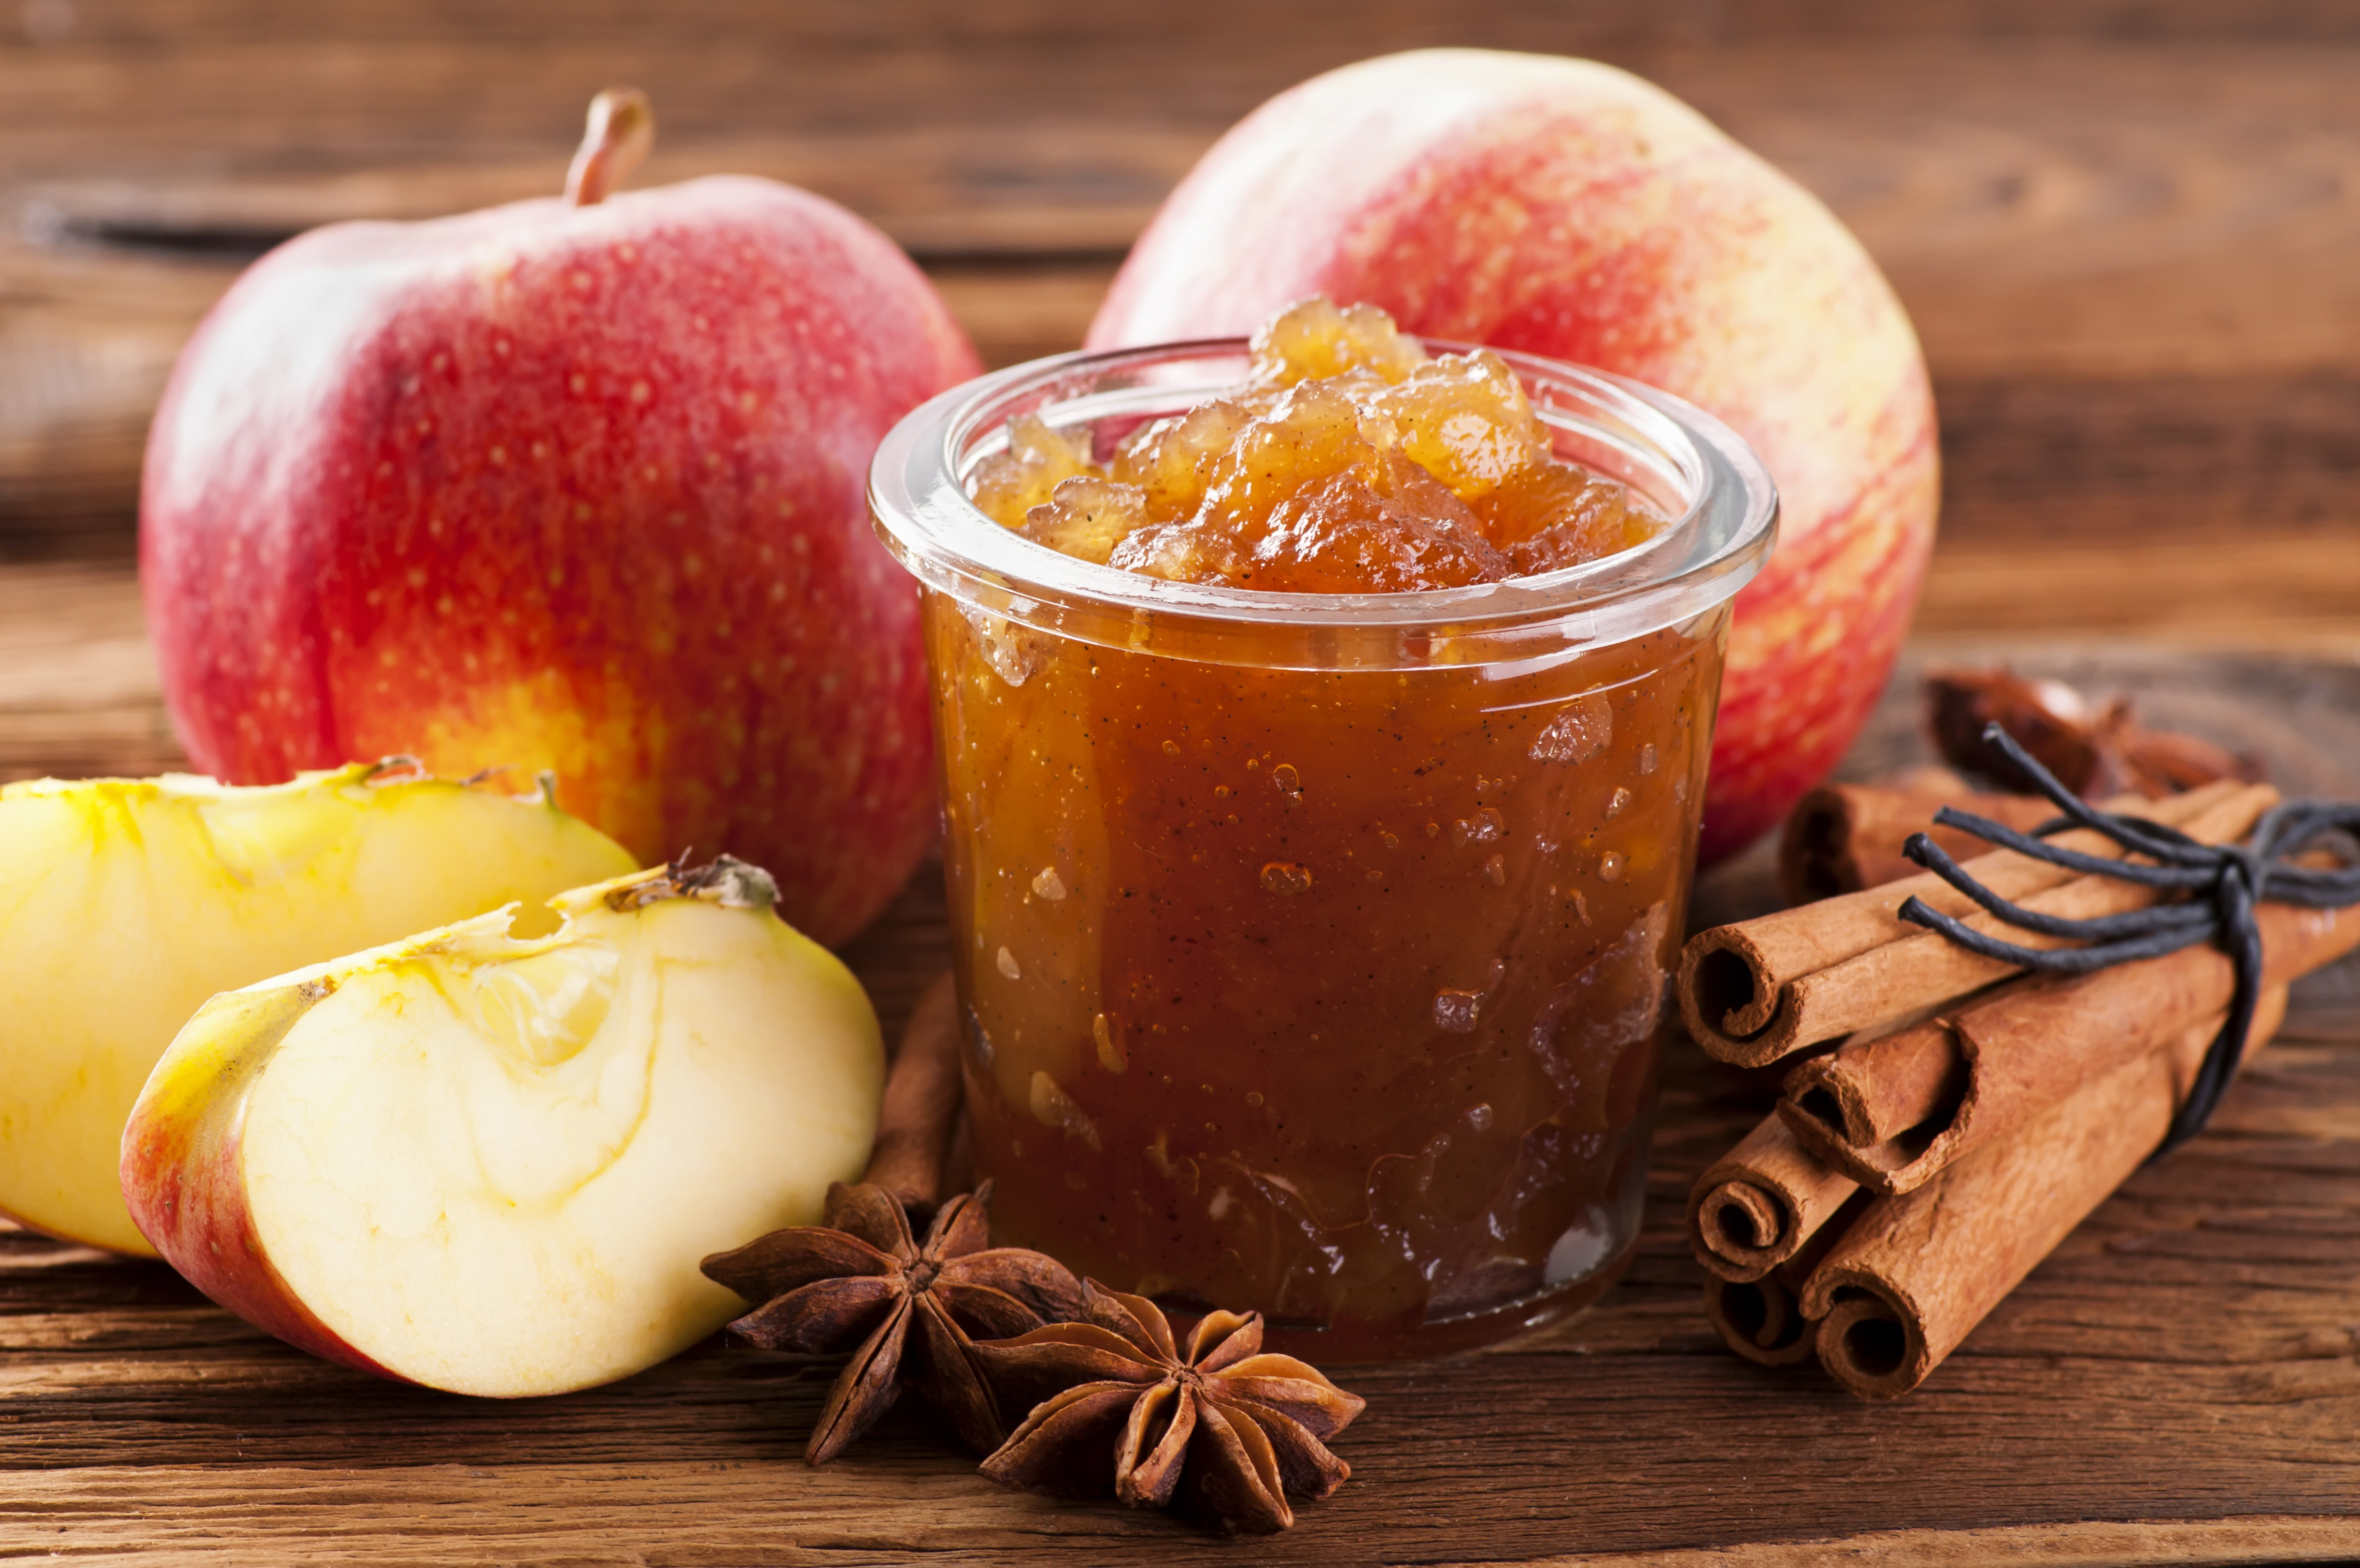 Apple Preserves Market Boosting the Growth Worldwide | The Agrana Group, Frulact, Zuegg